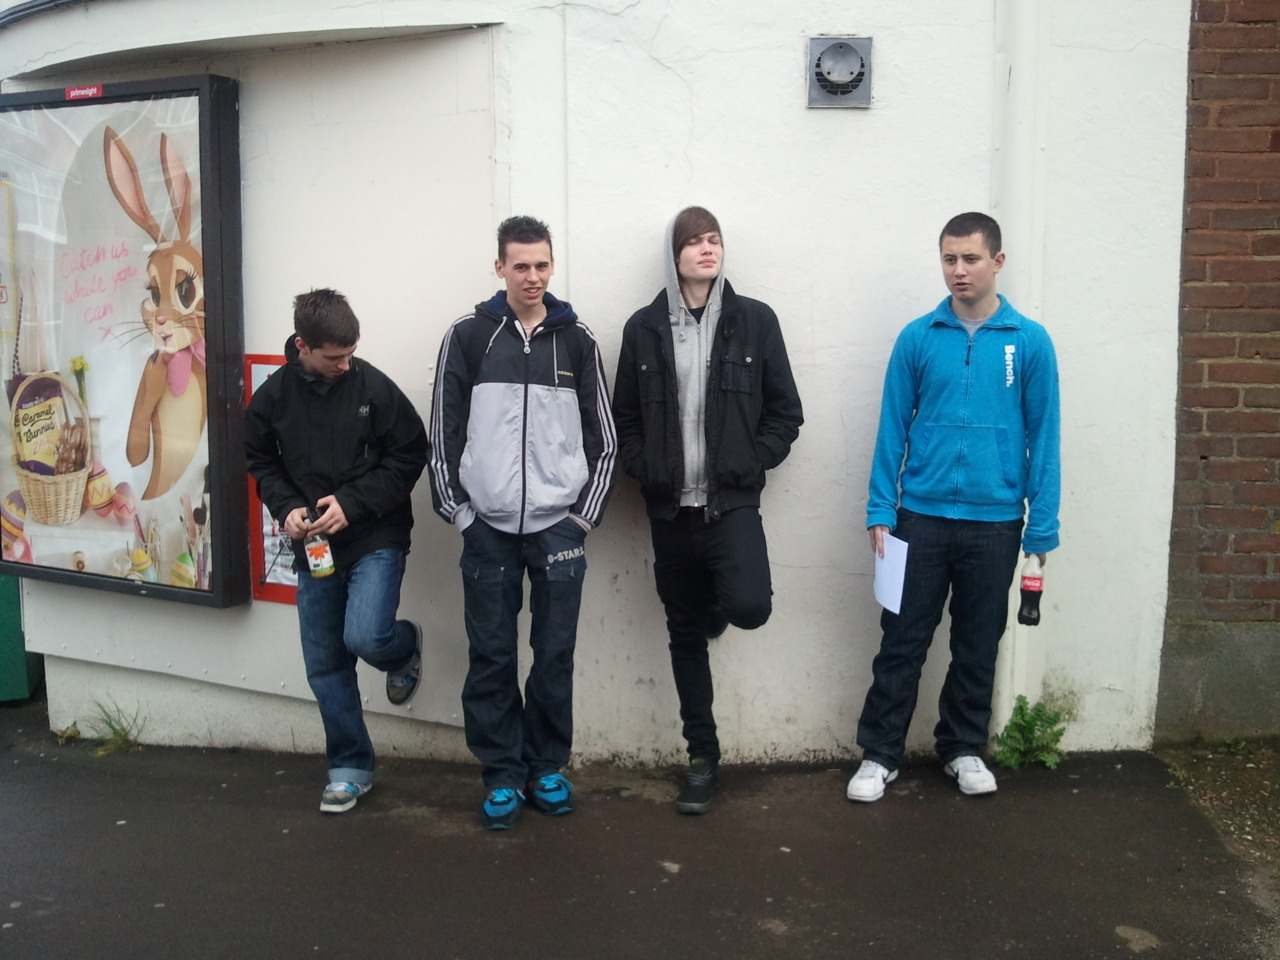 (L-R) Danny Hutchins, Conor Matthews, Dan Thorn, Lee Munshi) COMEDY RESEARCH These strapping young men are creating a live-action/ animation comedy in the style of 'The Inbetweeners' and 'South Park' and would very much appreciate you taking two minutes to help them with their National Diploma Interactive Media research: http://www.surveymonkey.com/s/3N8YPDH   Thanks